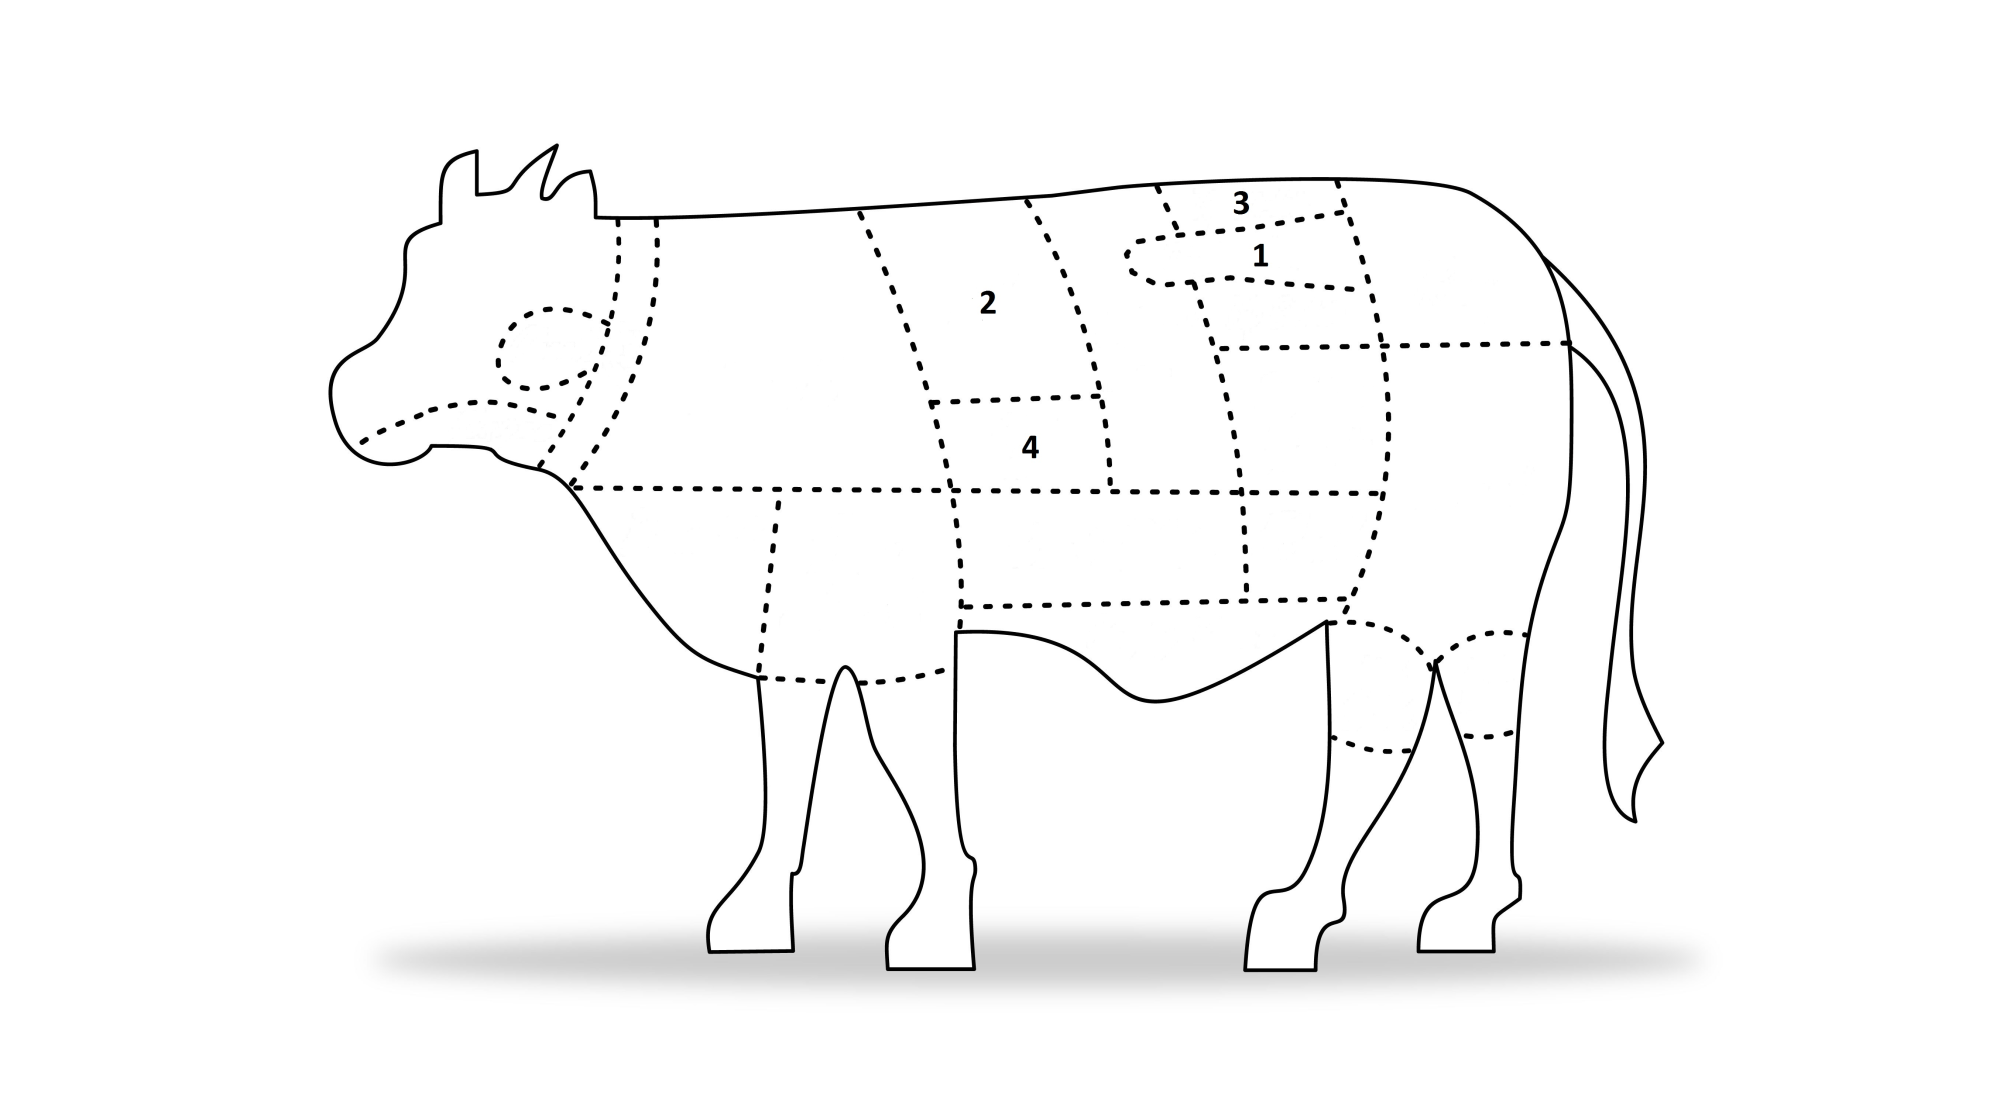 hight resolution of the following diagram should give you a better idea of where each cut we offer on jett foods is located on the beef carcass